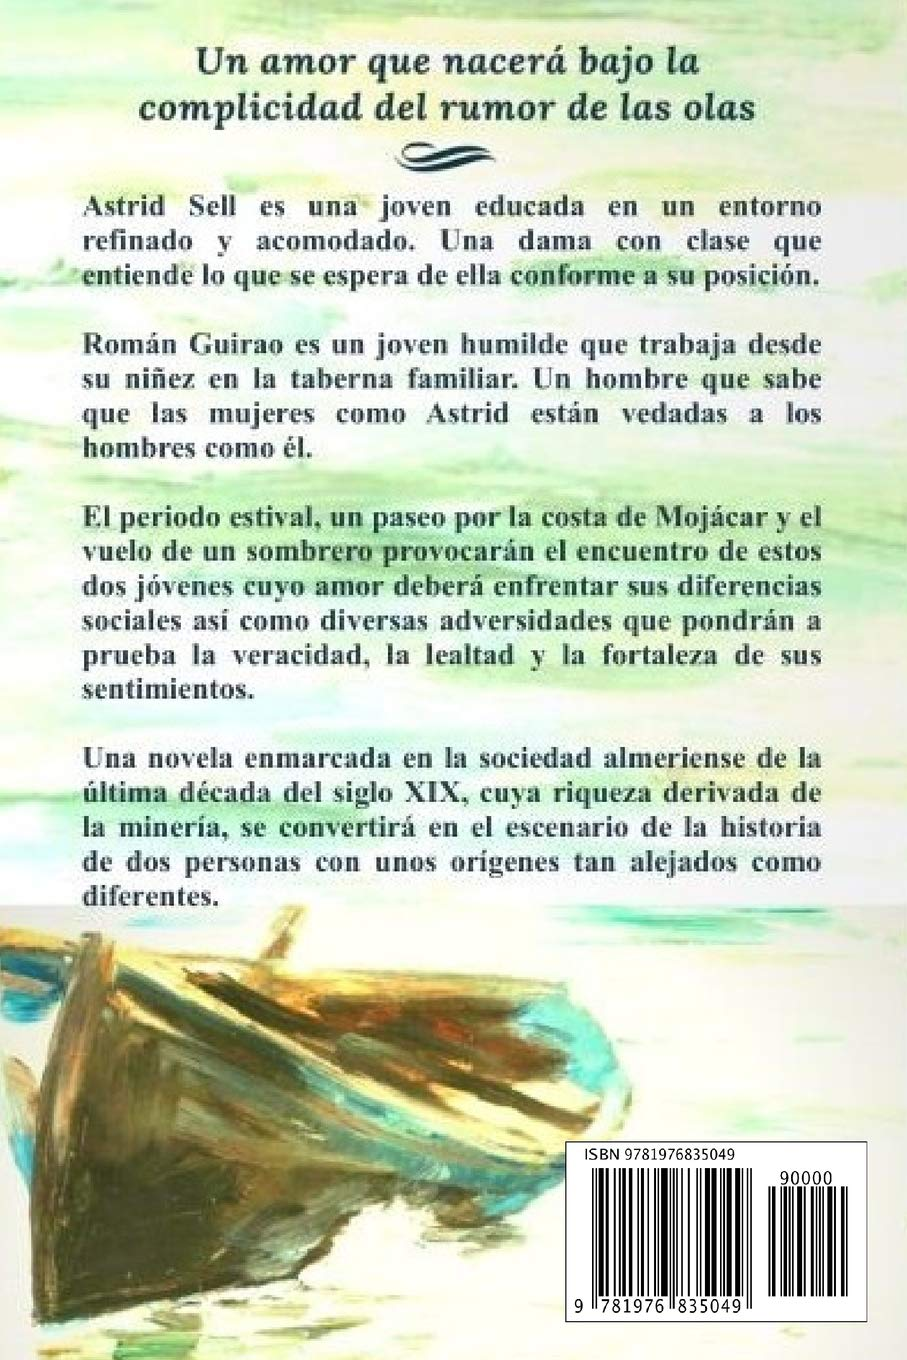 Al abrigo del mar (Spanish Edition): Beatriz Manrique: 9781976835049: Amazon.com: Books